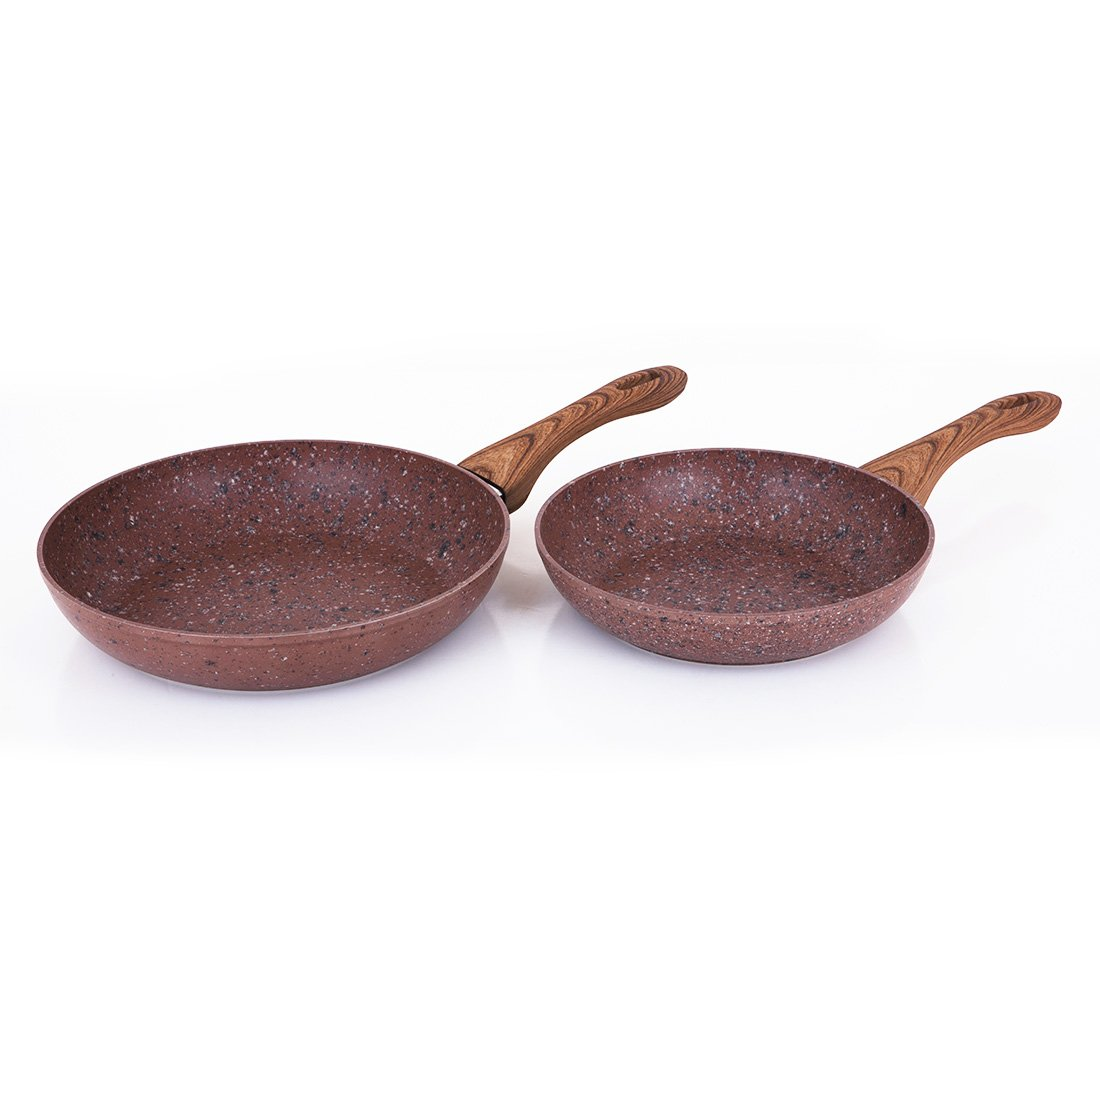 MICHELANGELO 2 Piece Granite Non-Stick Fry Pan Set, Marble Skillet Set with Wooden Looking Handles, Induction Compatible, 9 1/2 Inch and 11 Inch, Brown